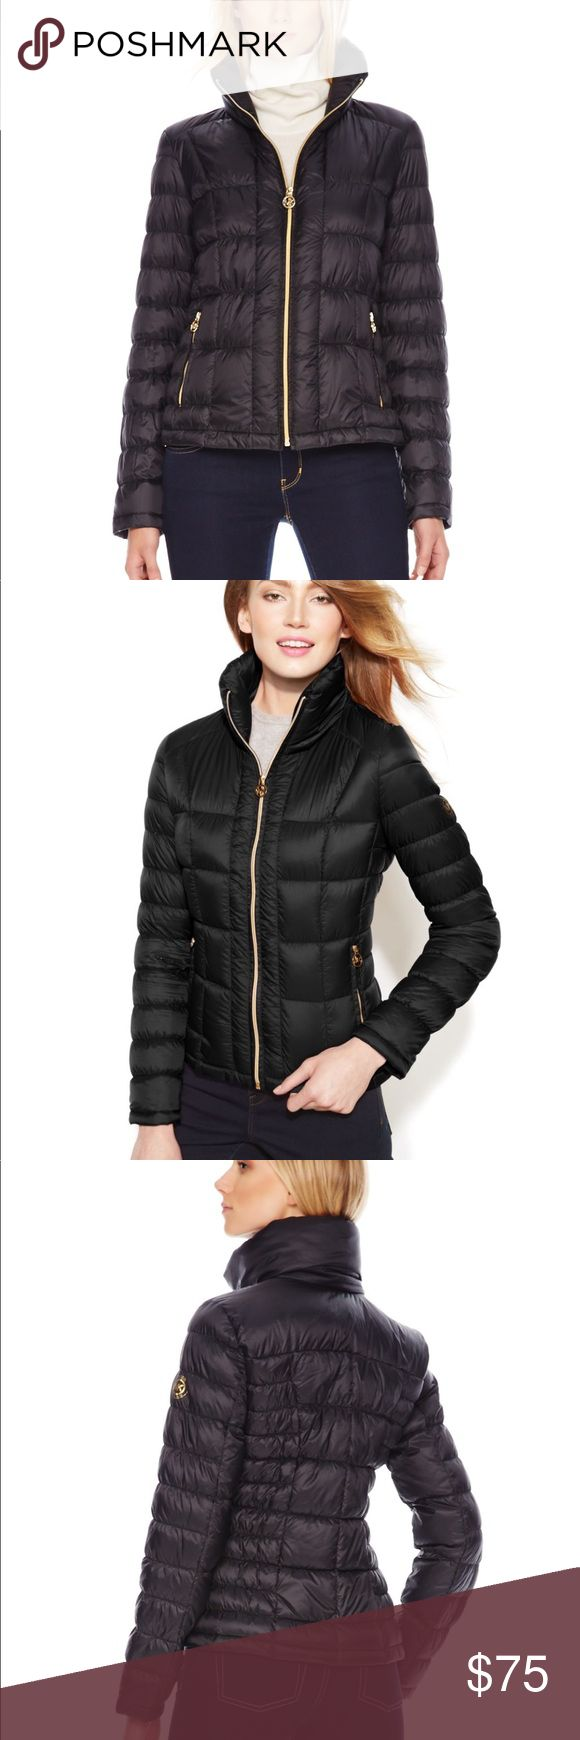 Michael Kors short puffer coat in black XS Like new. Down filling. Michael Kors Jackets & Coats